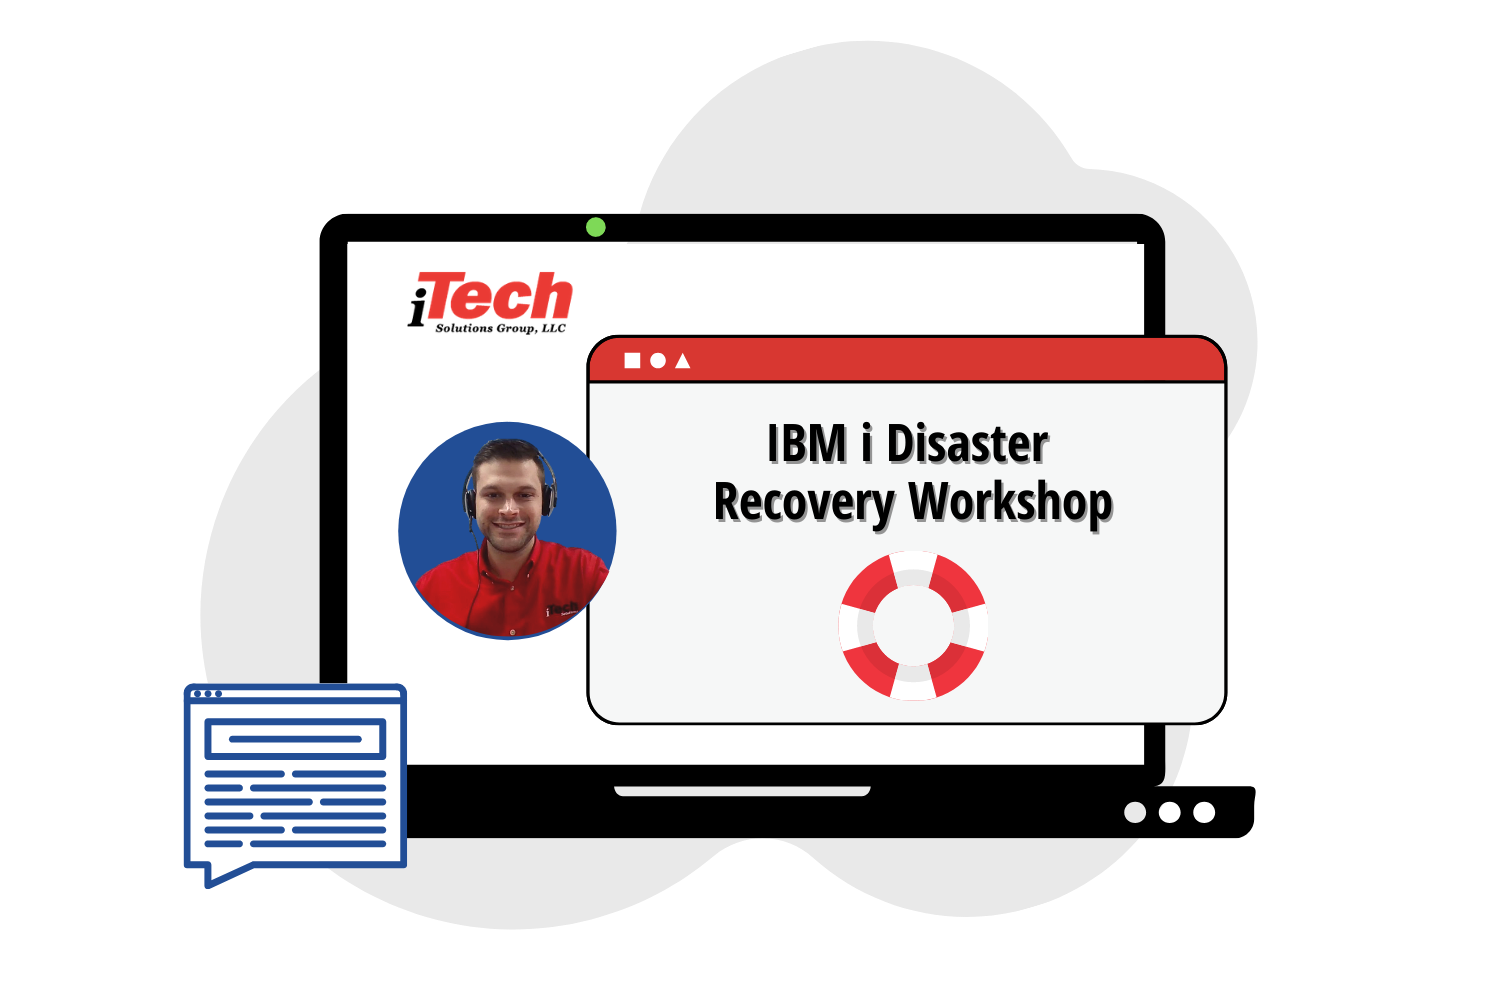 IBM i Disaster Recovery Workshop Graphic